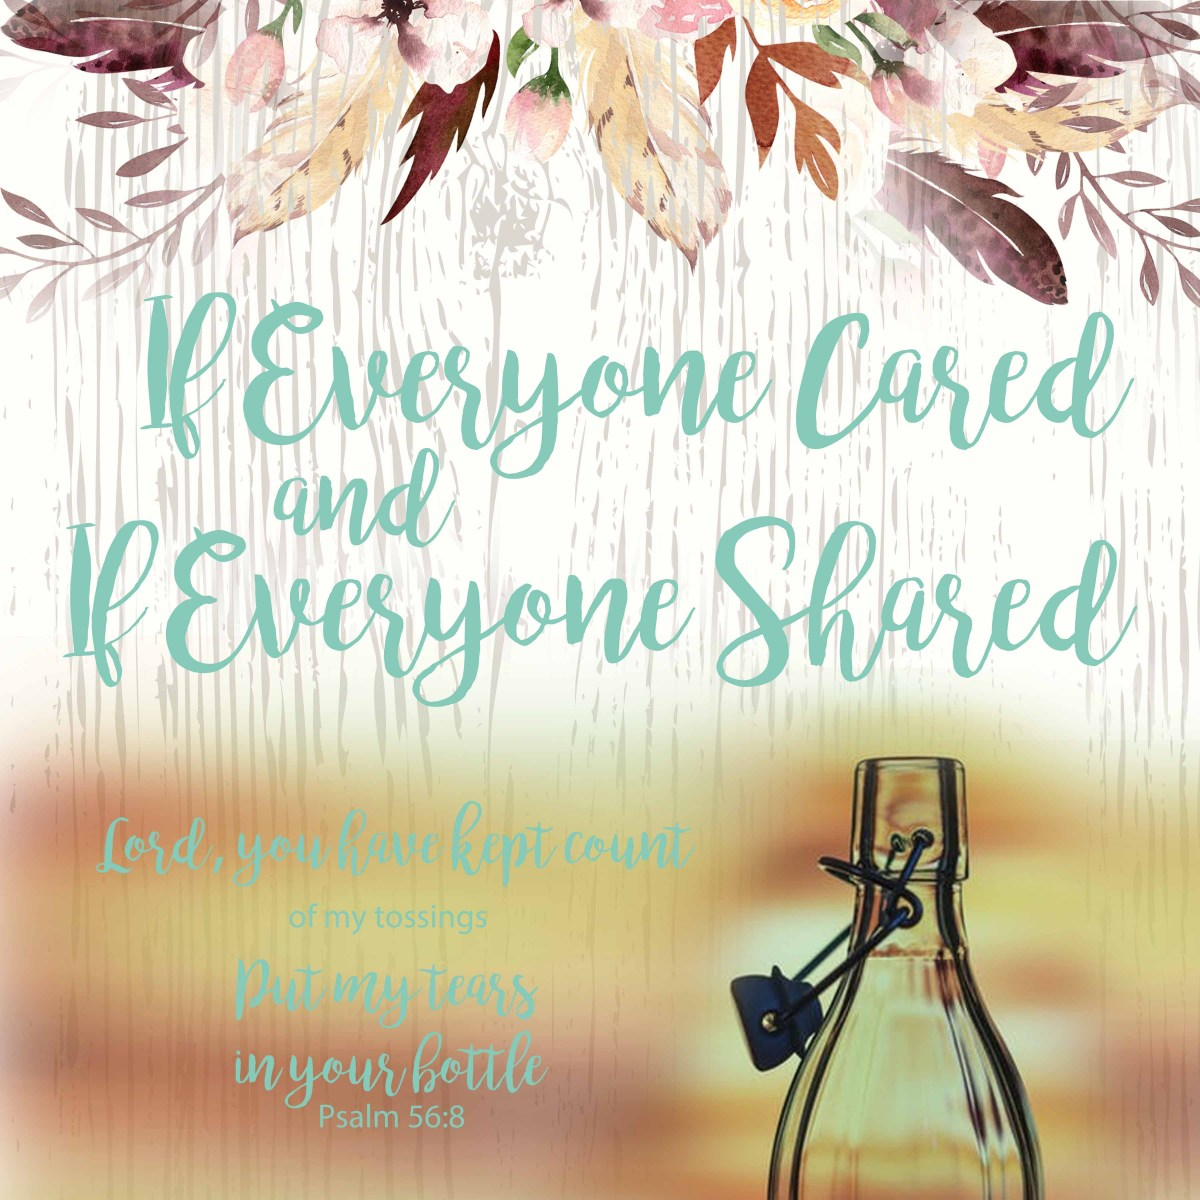 If Everyone Cared and If Everyone Shared